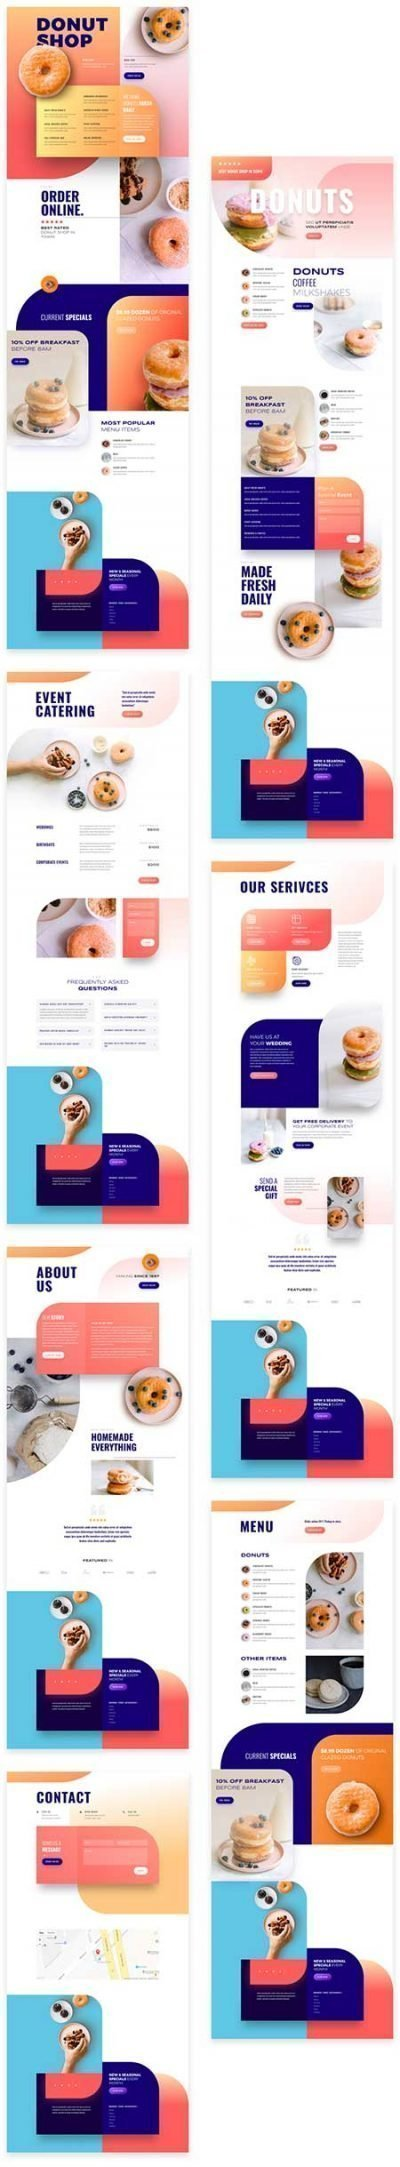 Divi donuts shop layout